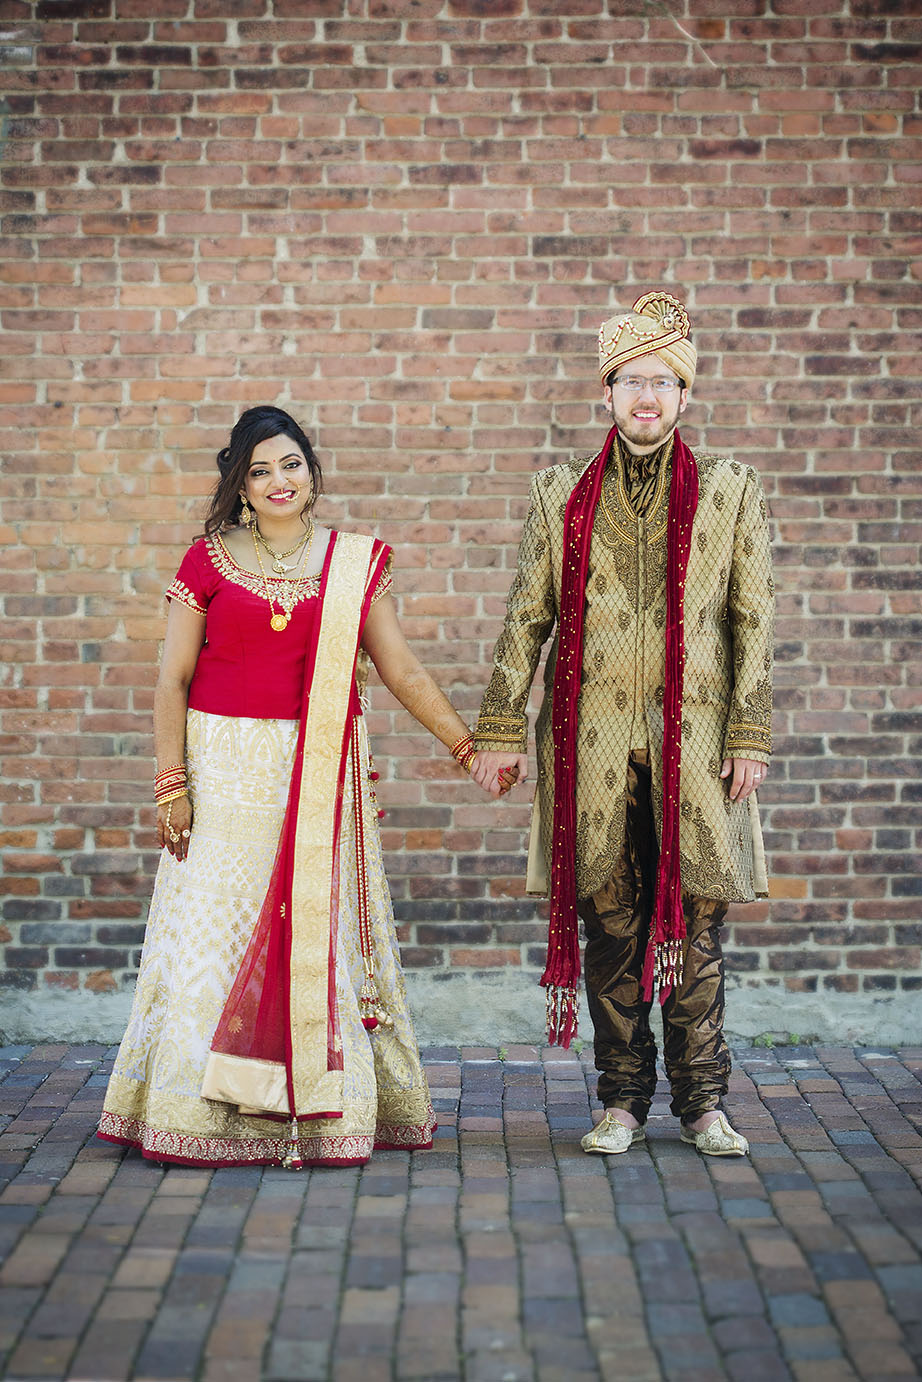 michigan indian wedding photographer - Brighton, Michigan